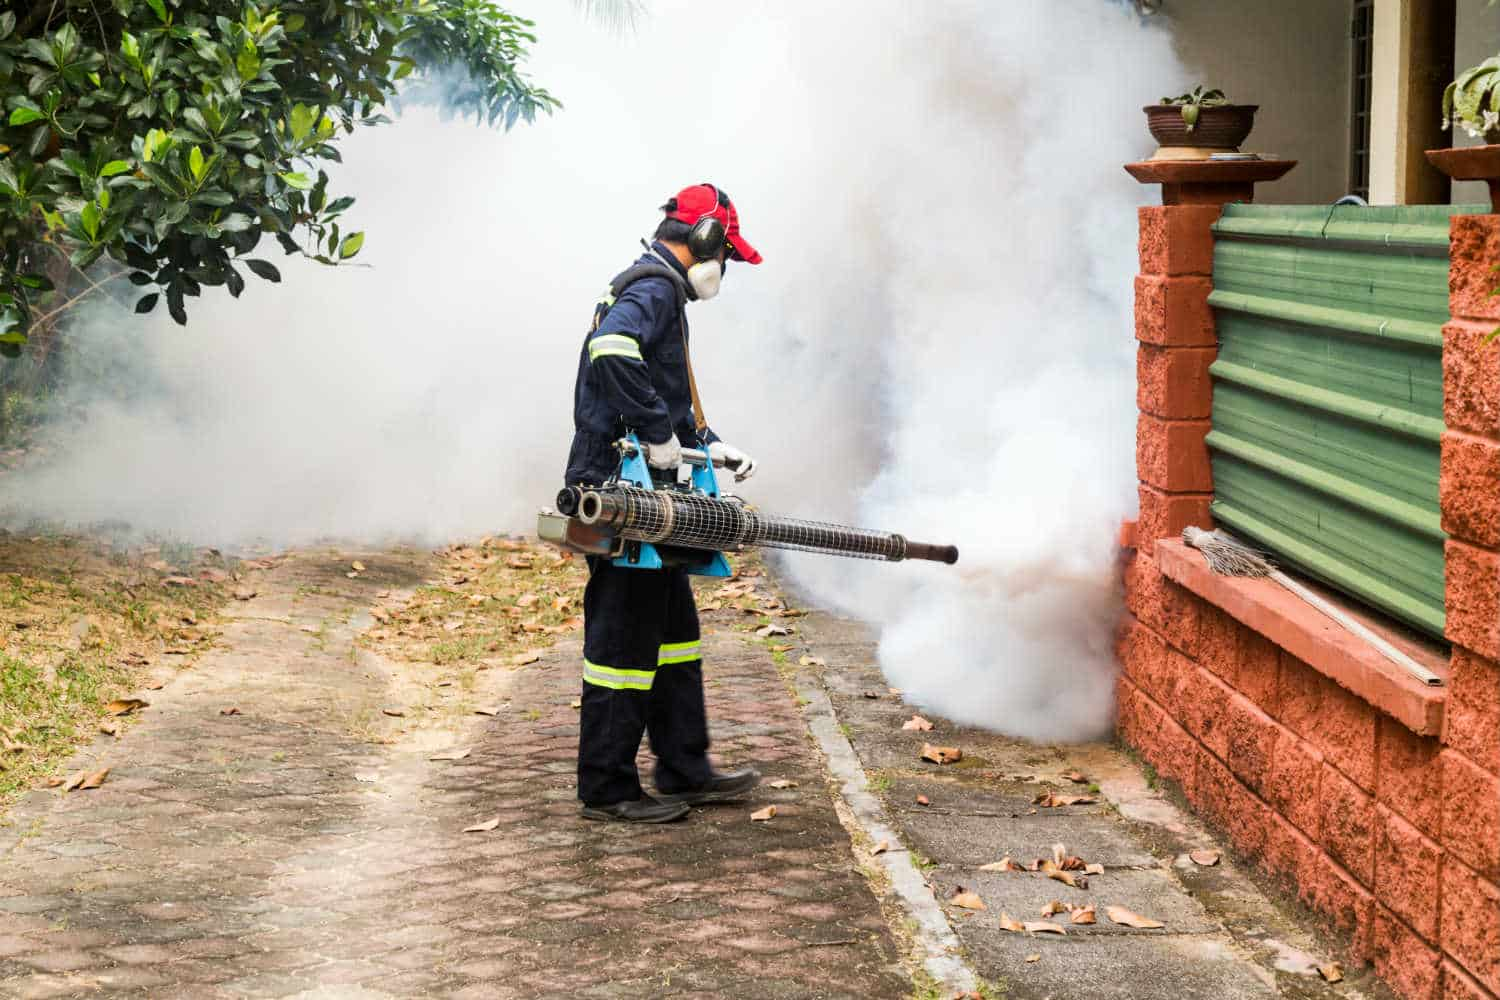 Cheap Pest Control Service For Residential At Smyth Pest Control!